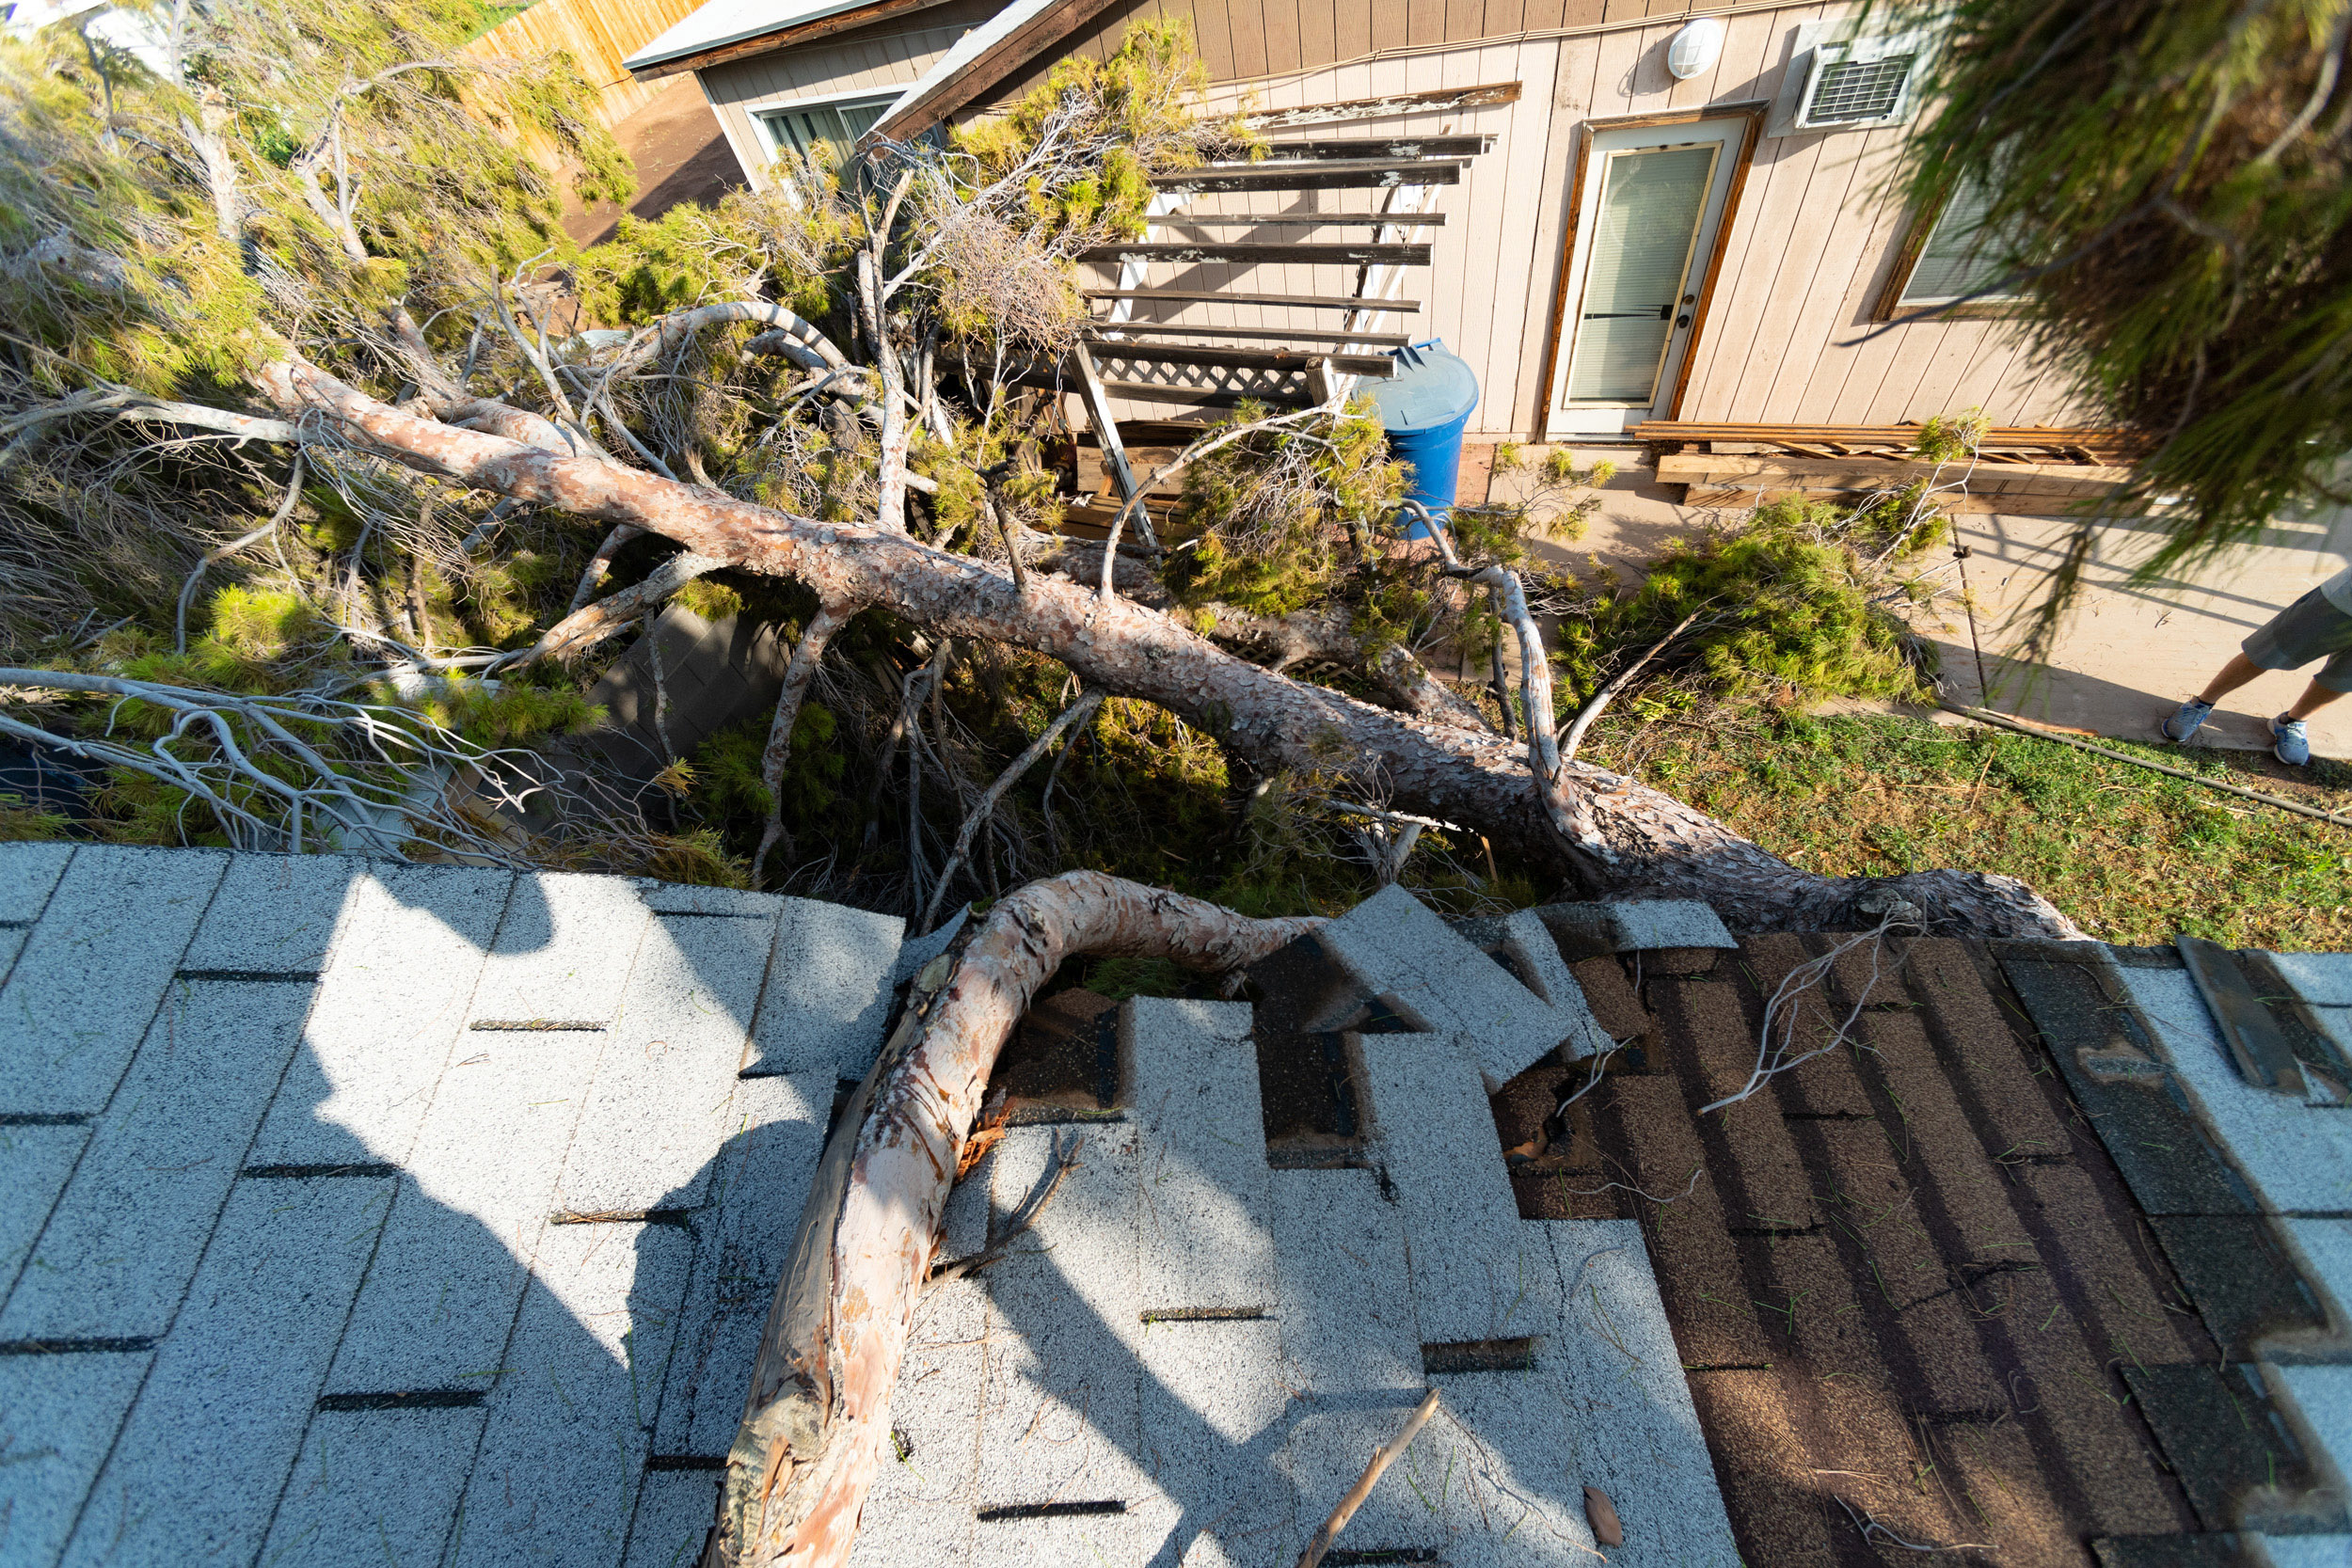 Damaged Roof by Tree